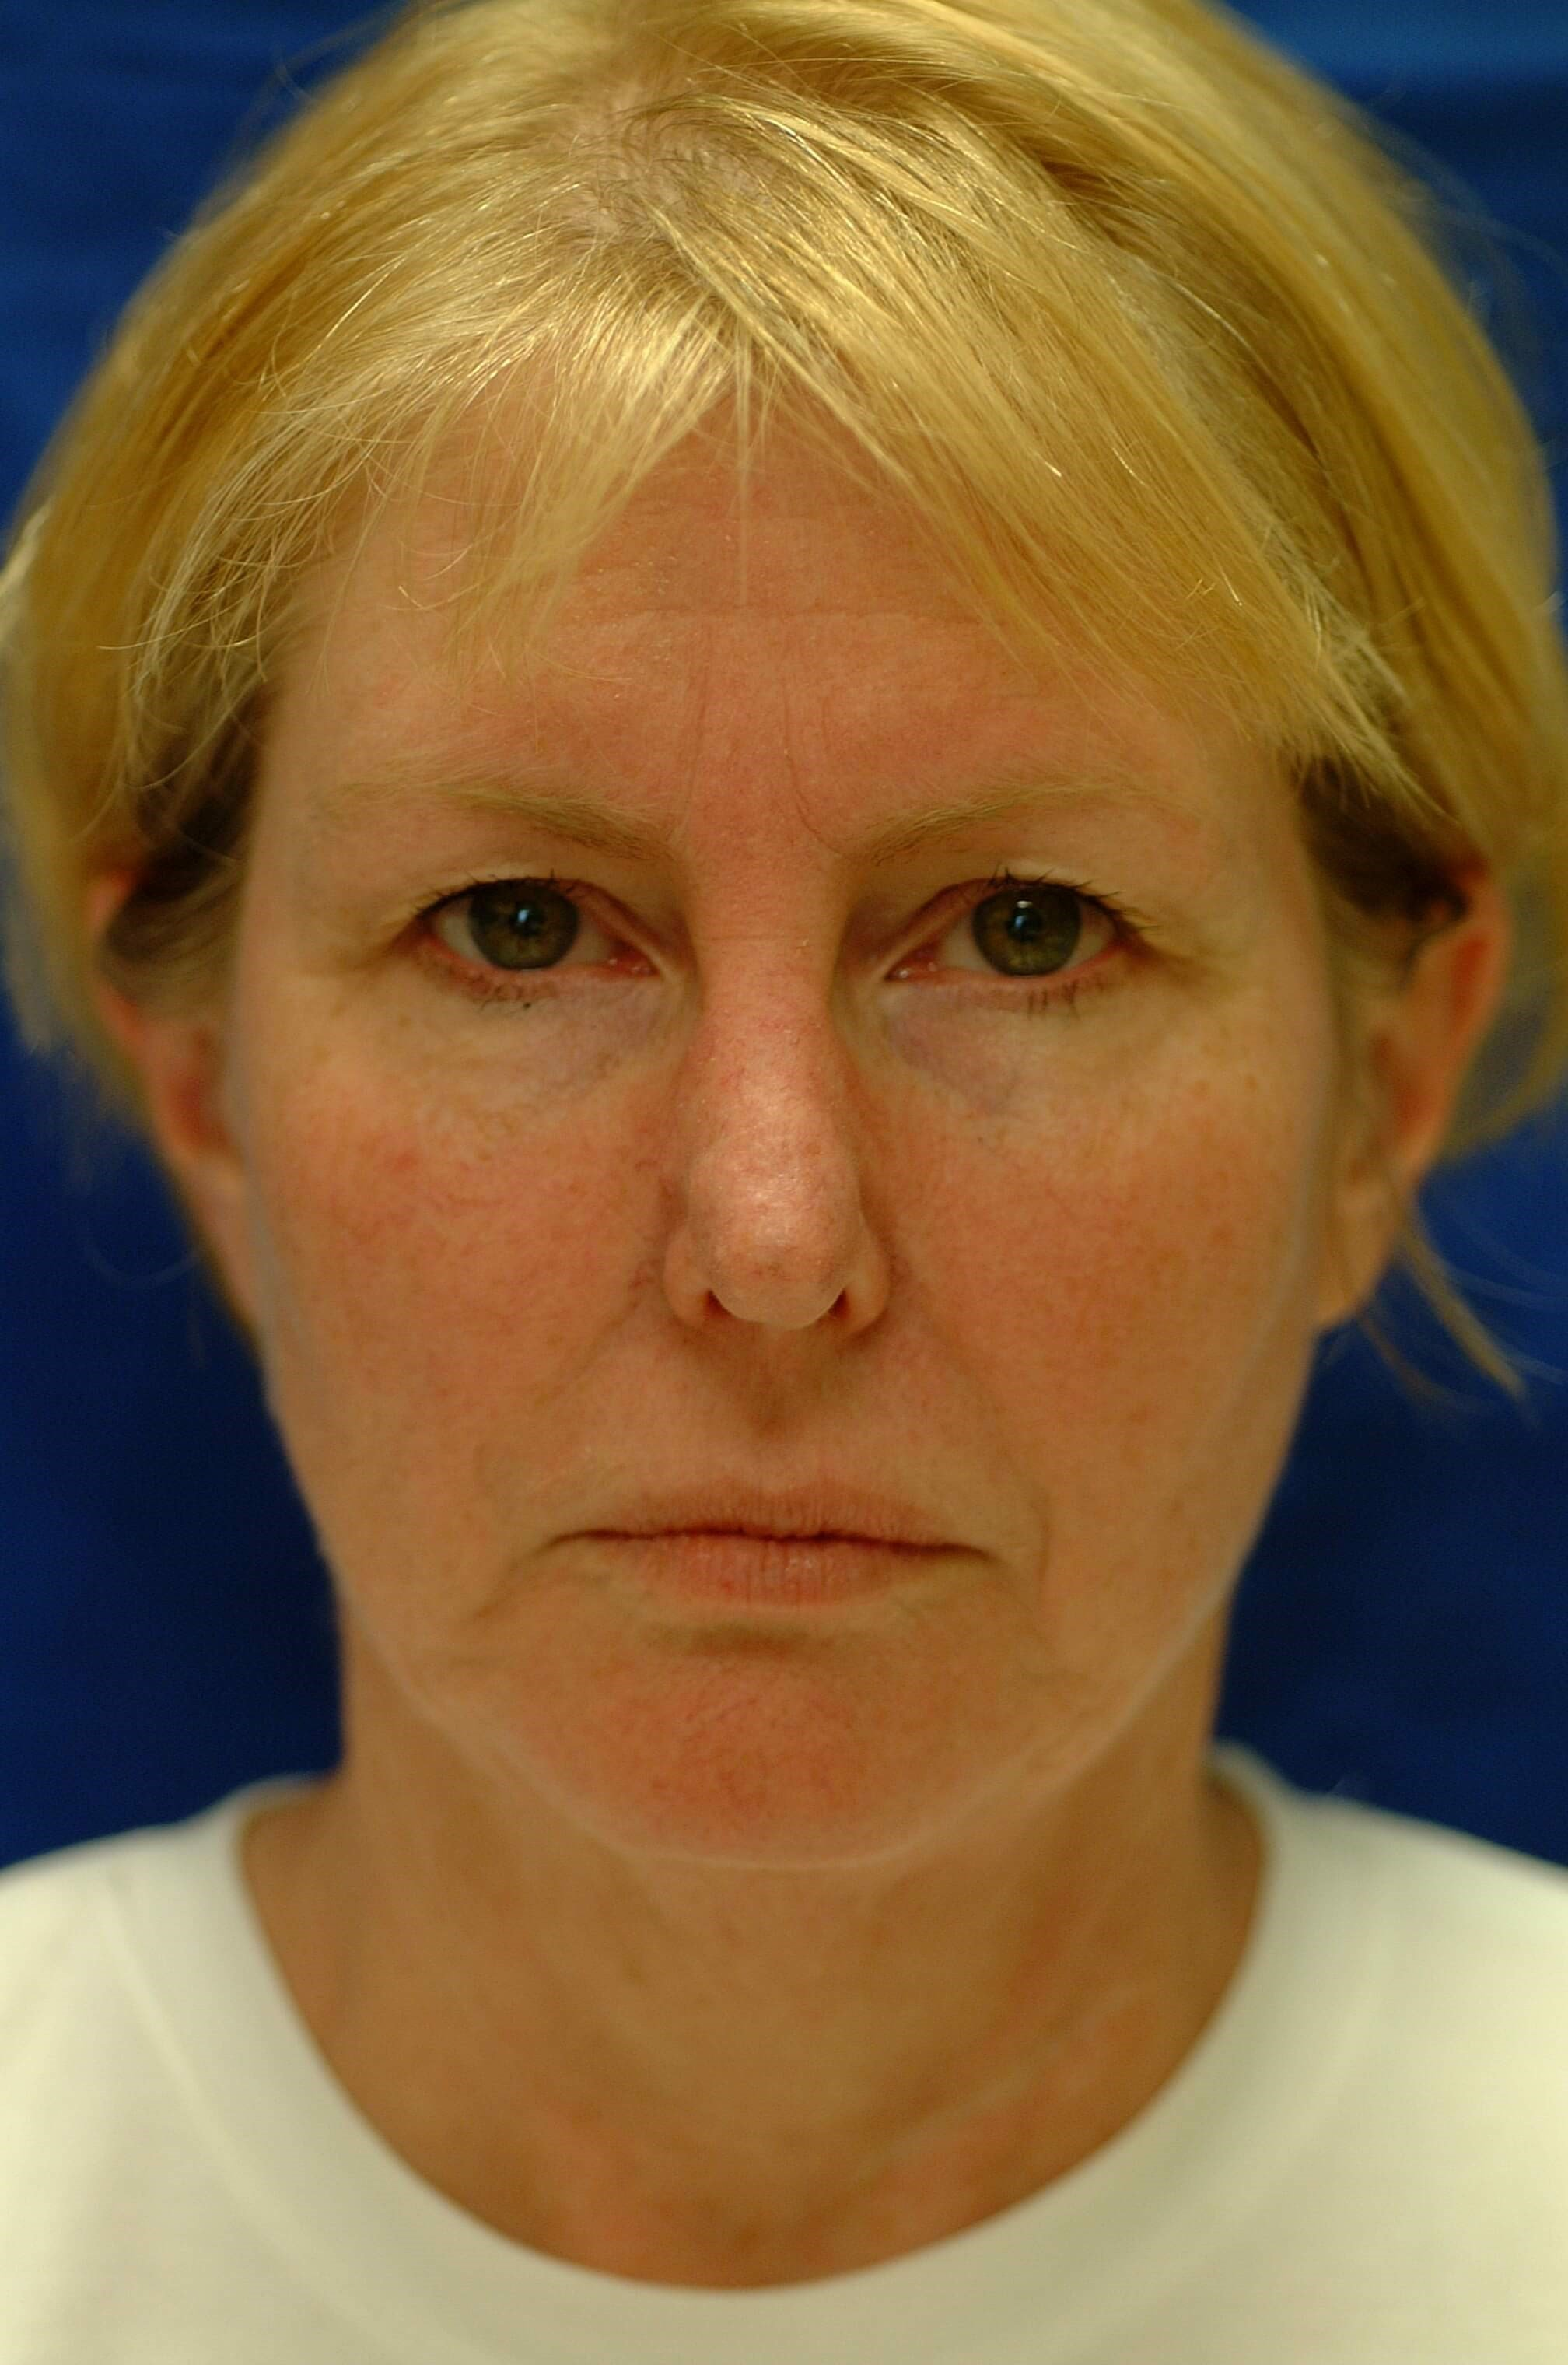 Newport Facelift/Rhinoplasty Front View Before